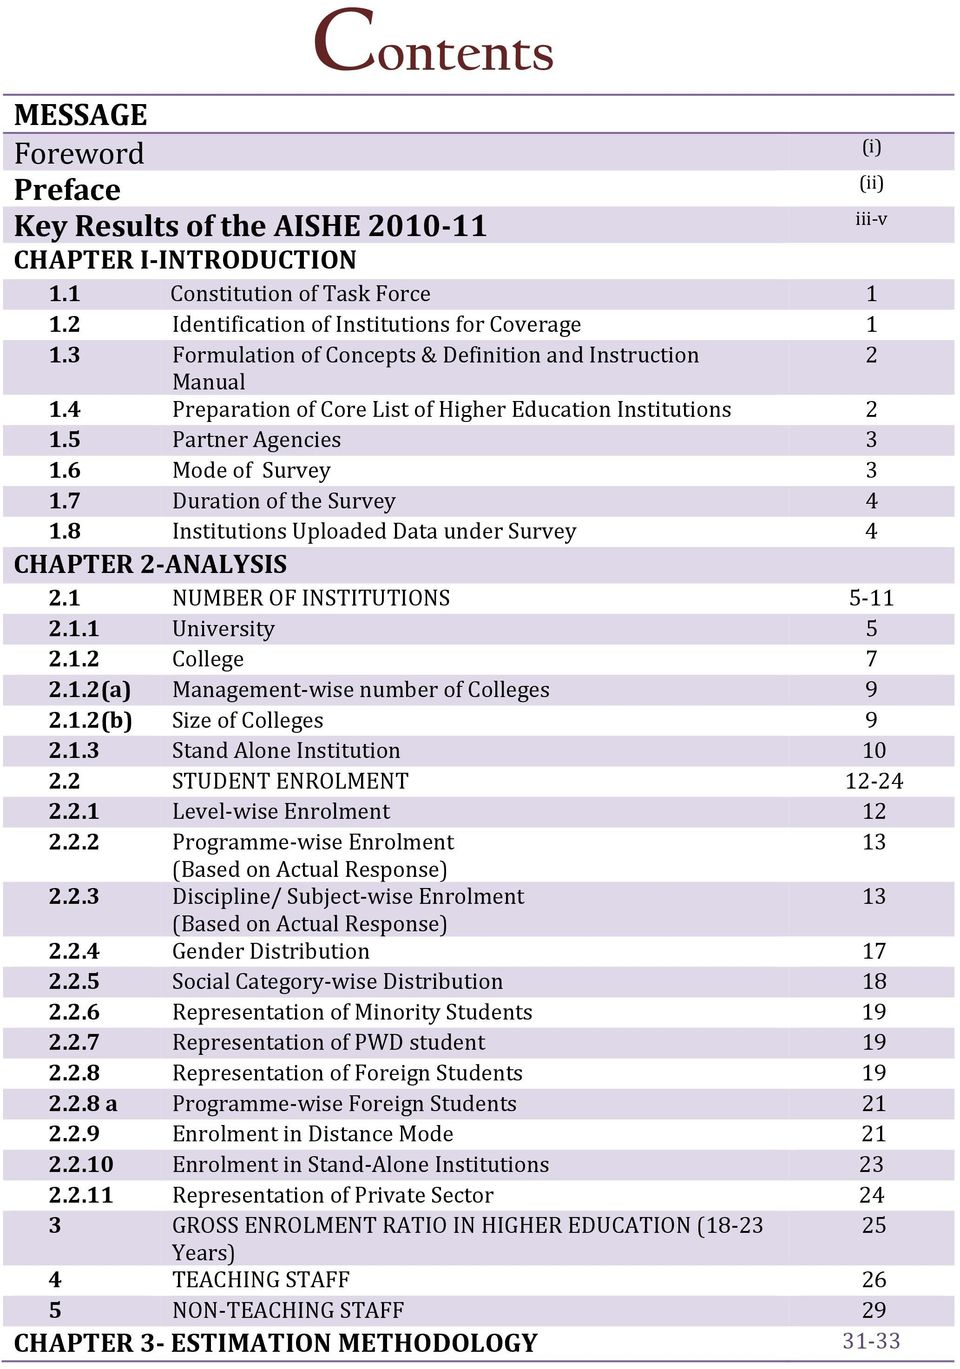 7 Duration of the Survey 4 1.8 Institutions Uploaded Data under Survey 4 CHAPTER 2 ANALYSIS 2.1 NUMBER OF INSTITUTIONS 5 11 2.1.1 University 5 2.1.2 College 7 2.1.2(a) Management wise number of Colleges 9 2.